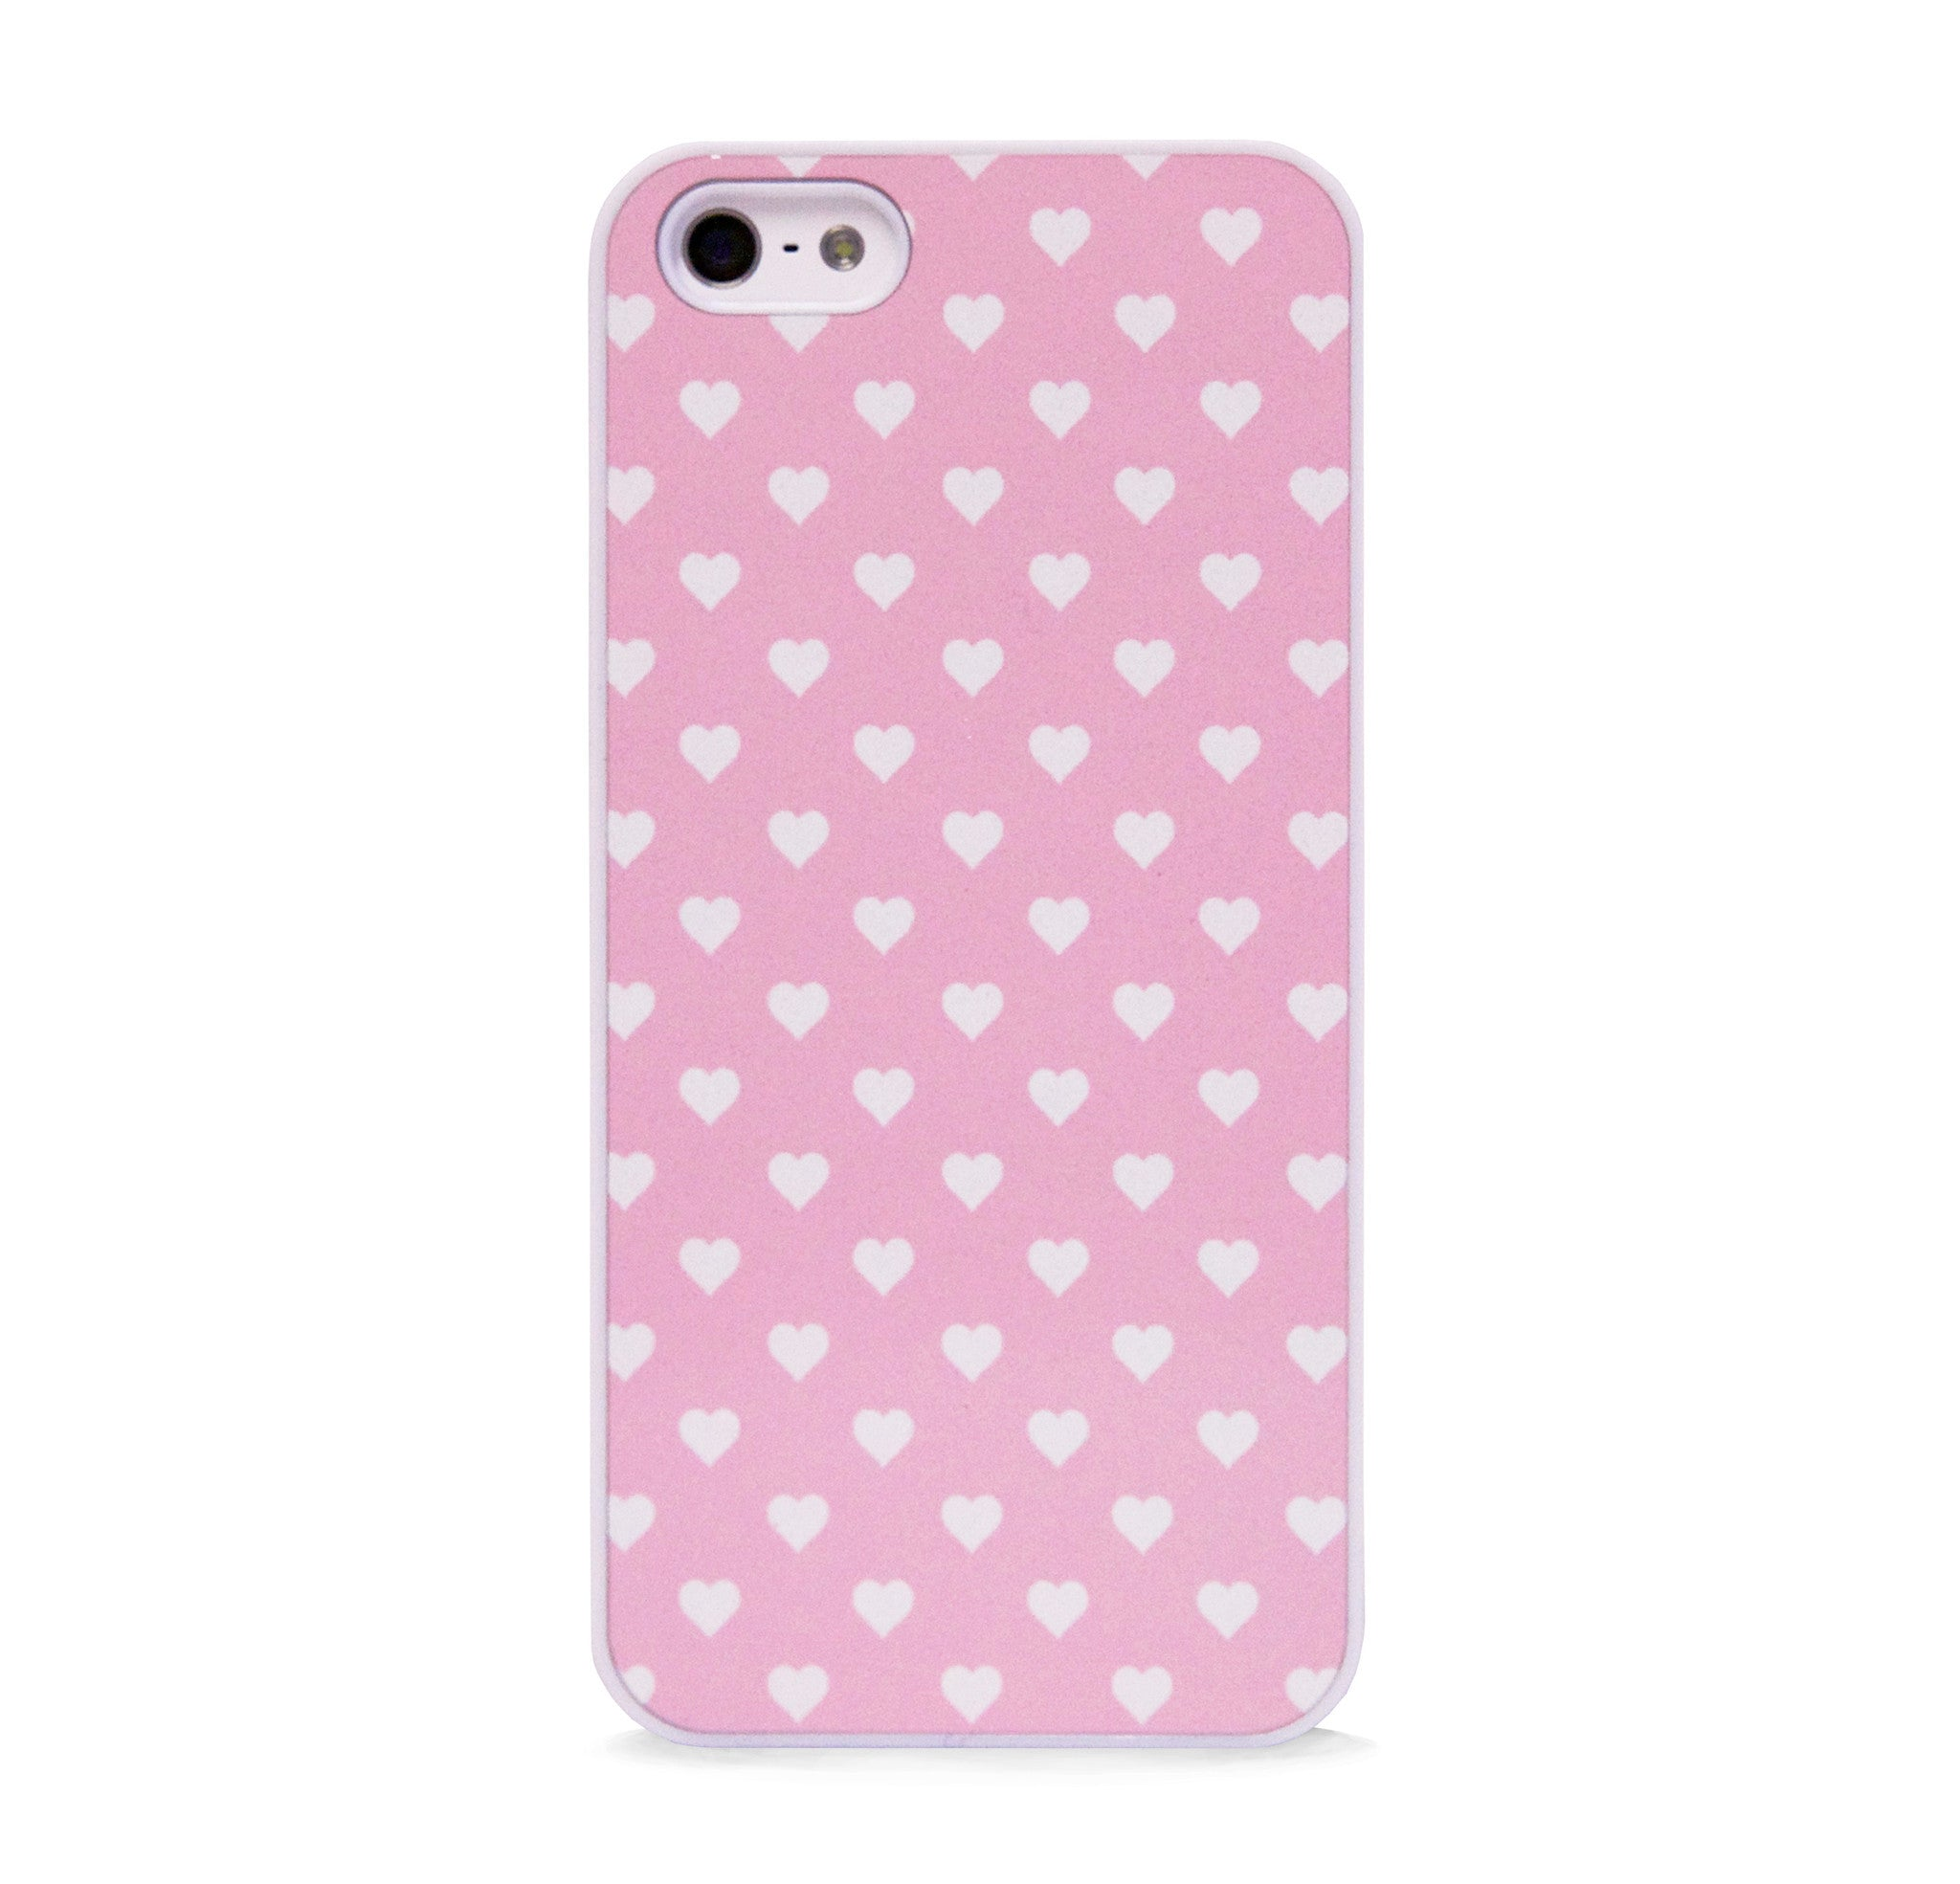 POLKA HEART PINK FOR IPHONE 5/5S, IPHONE SE